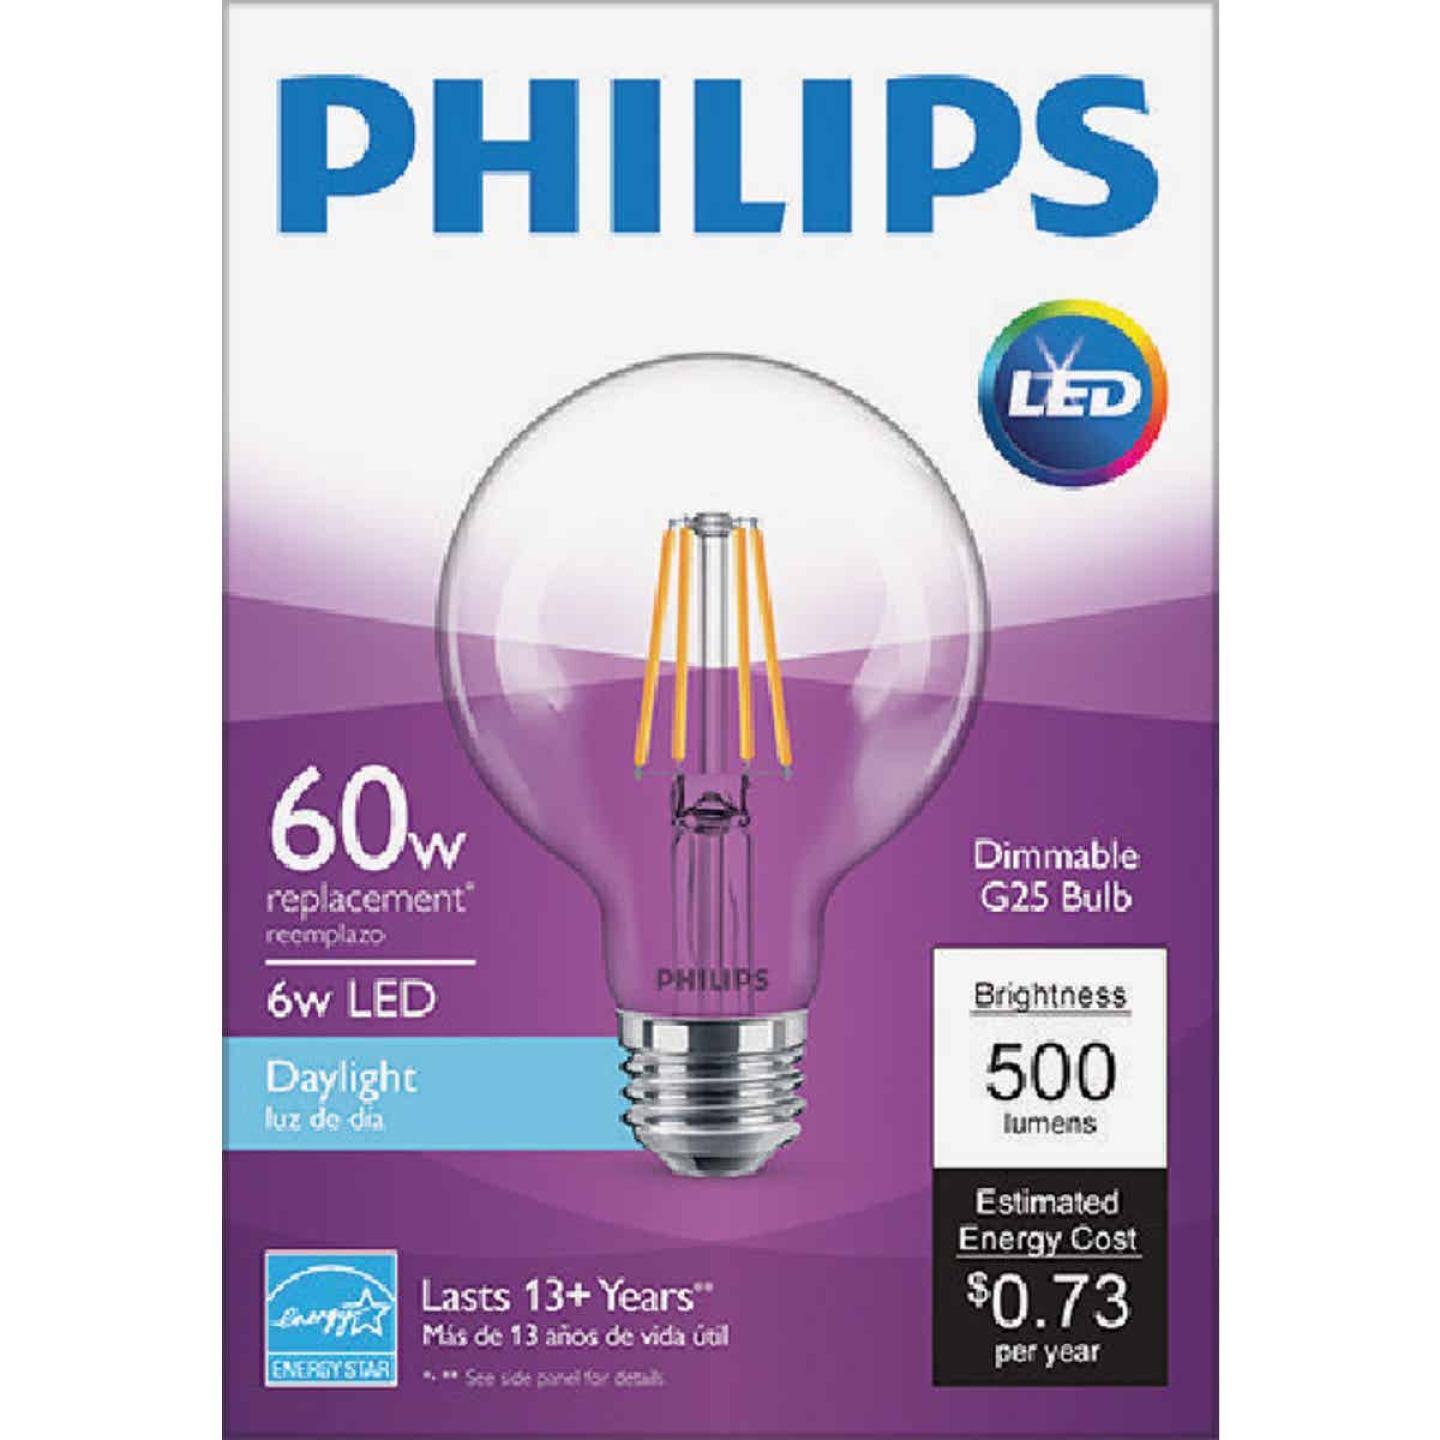 Philips 60W Equivalent Daylight G25 Medium Clear LED Decorative Light Bulb Image 2